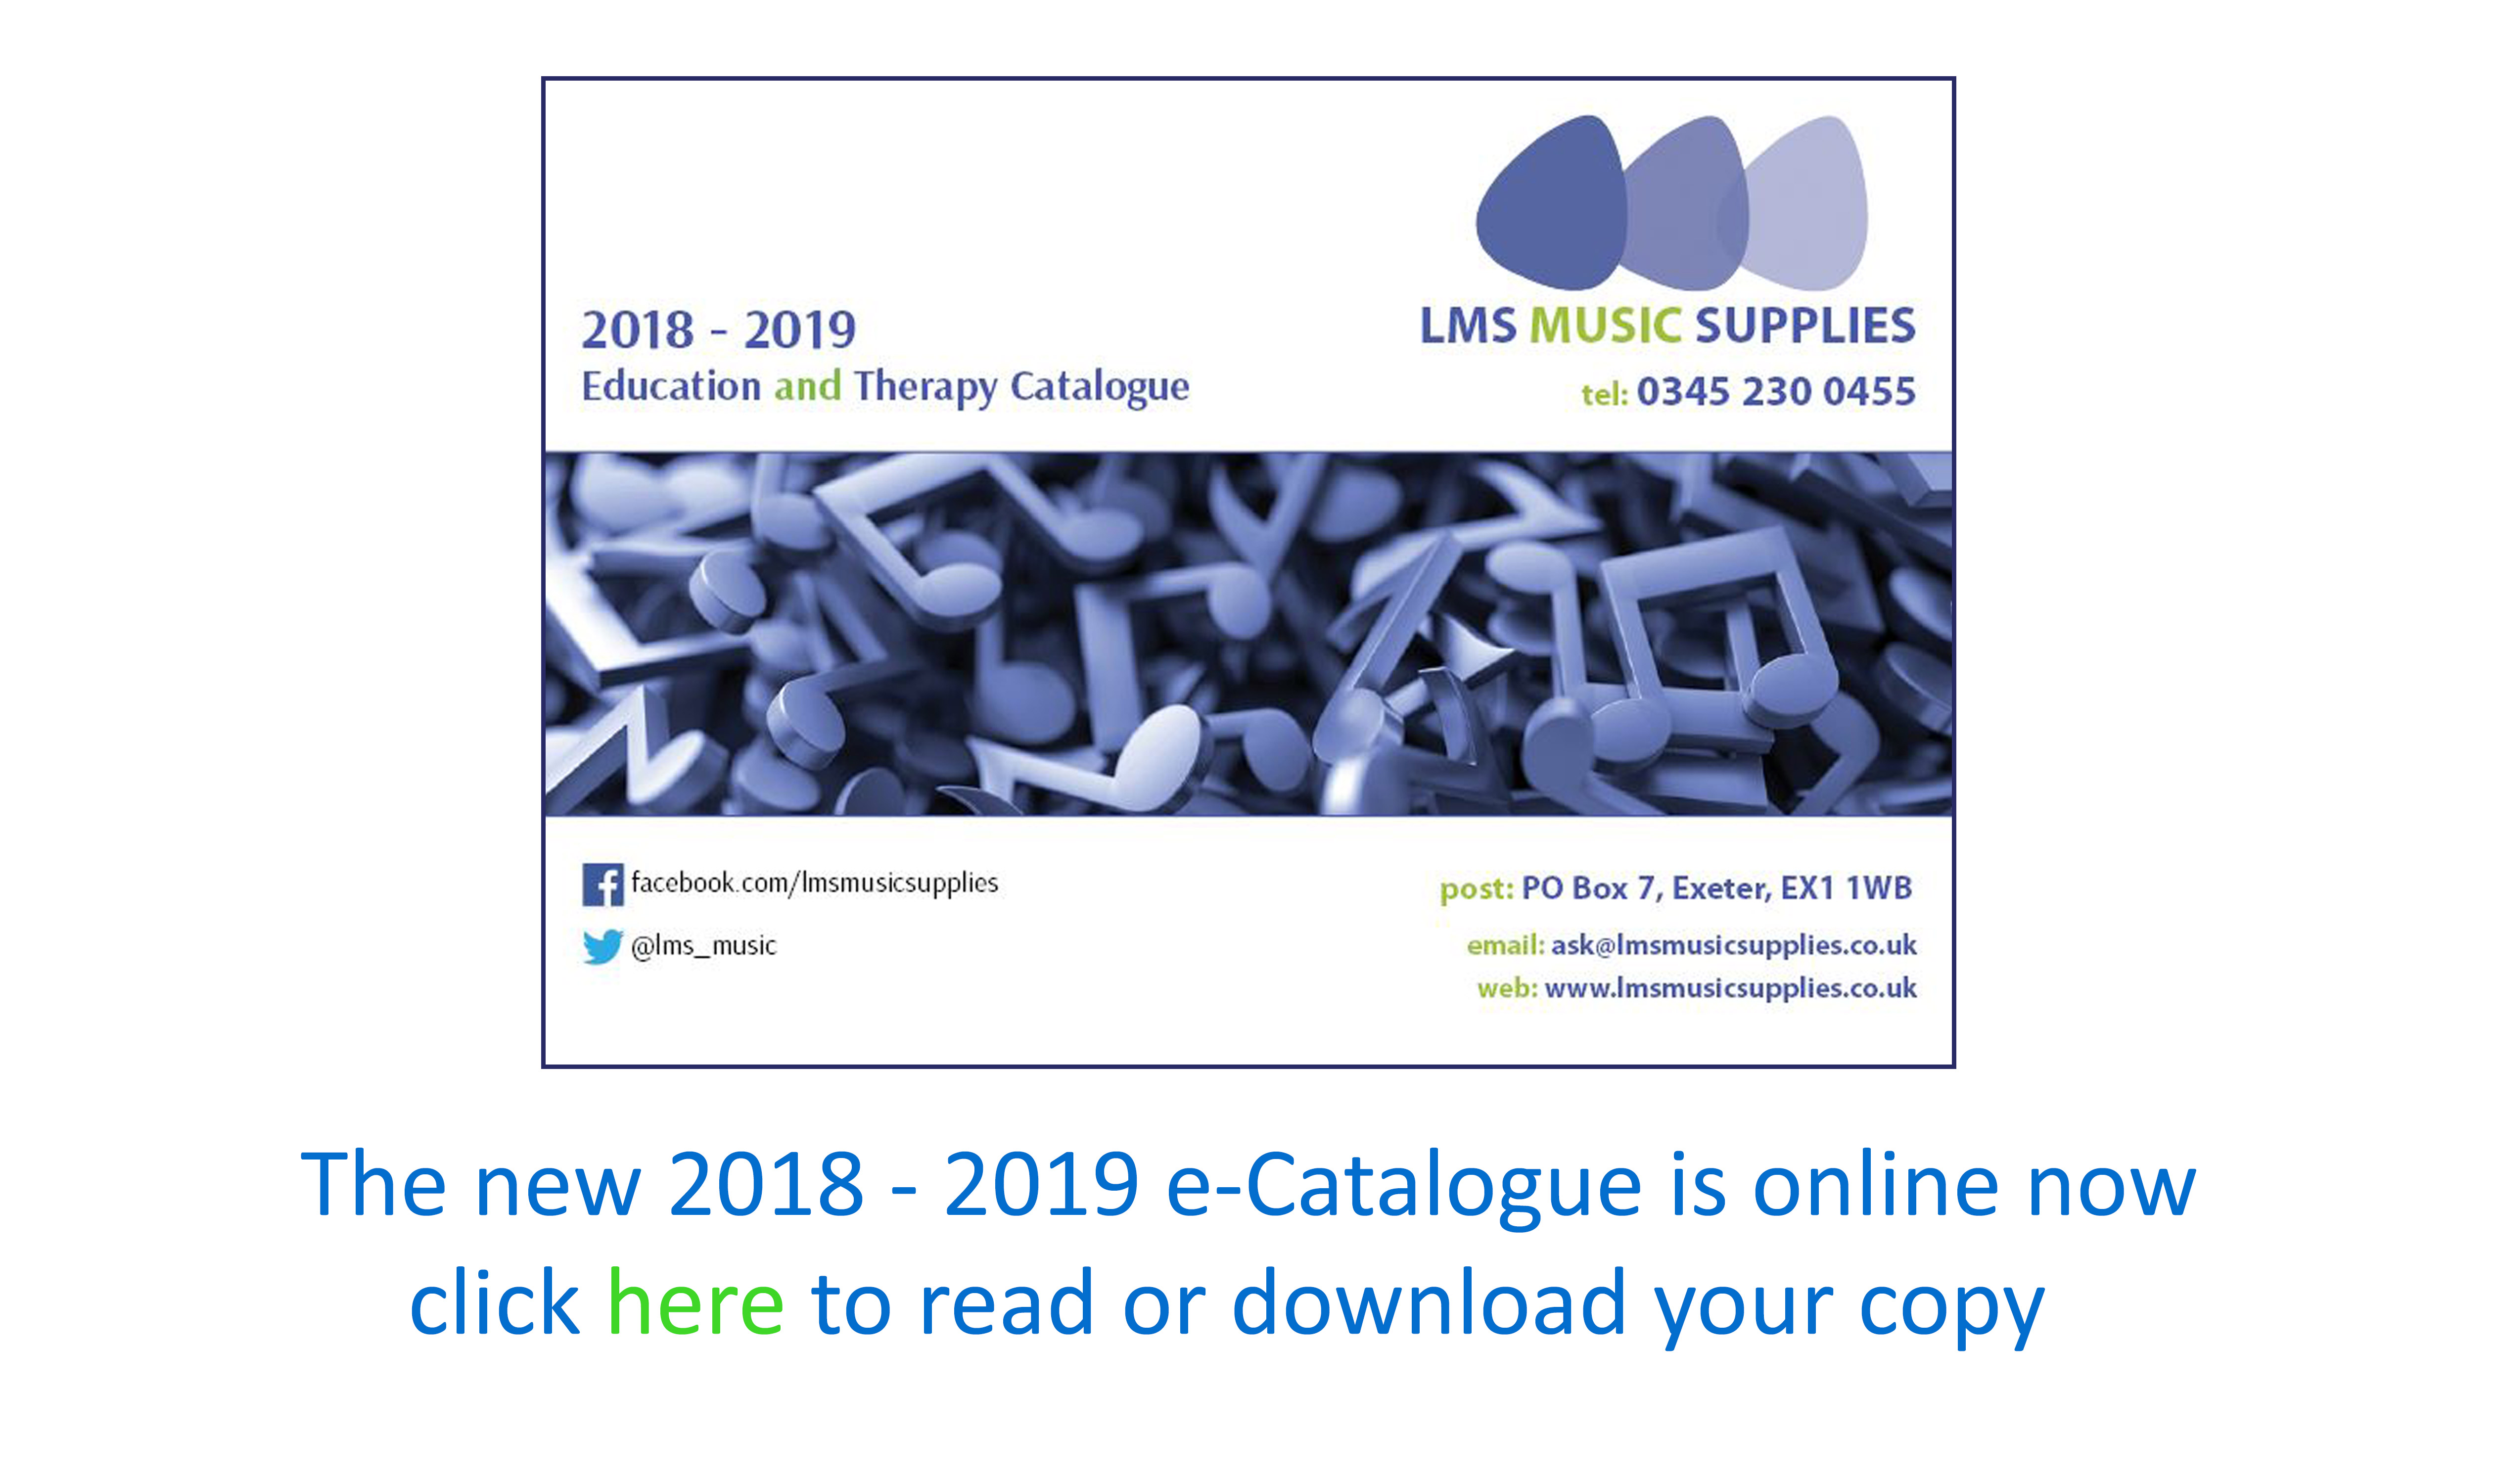 LMS Music Supplies Catlogue 2018 - 2019